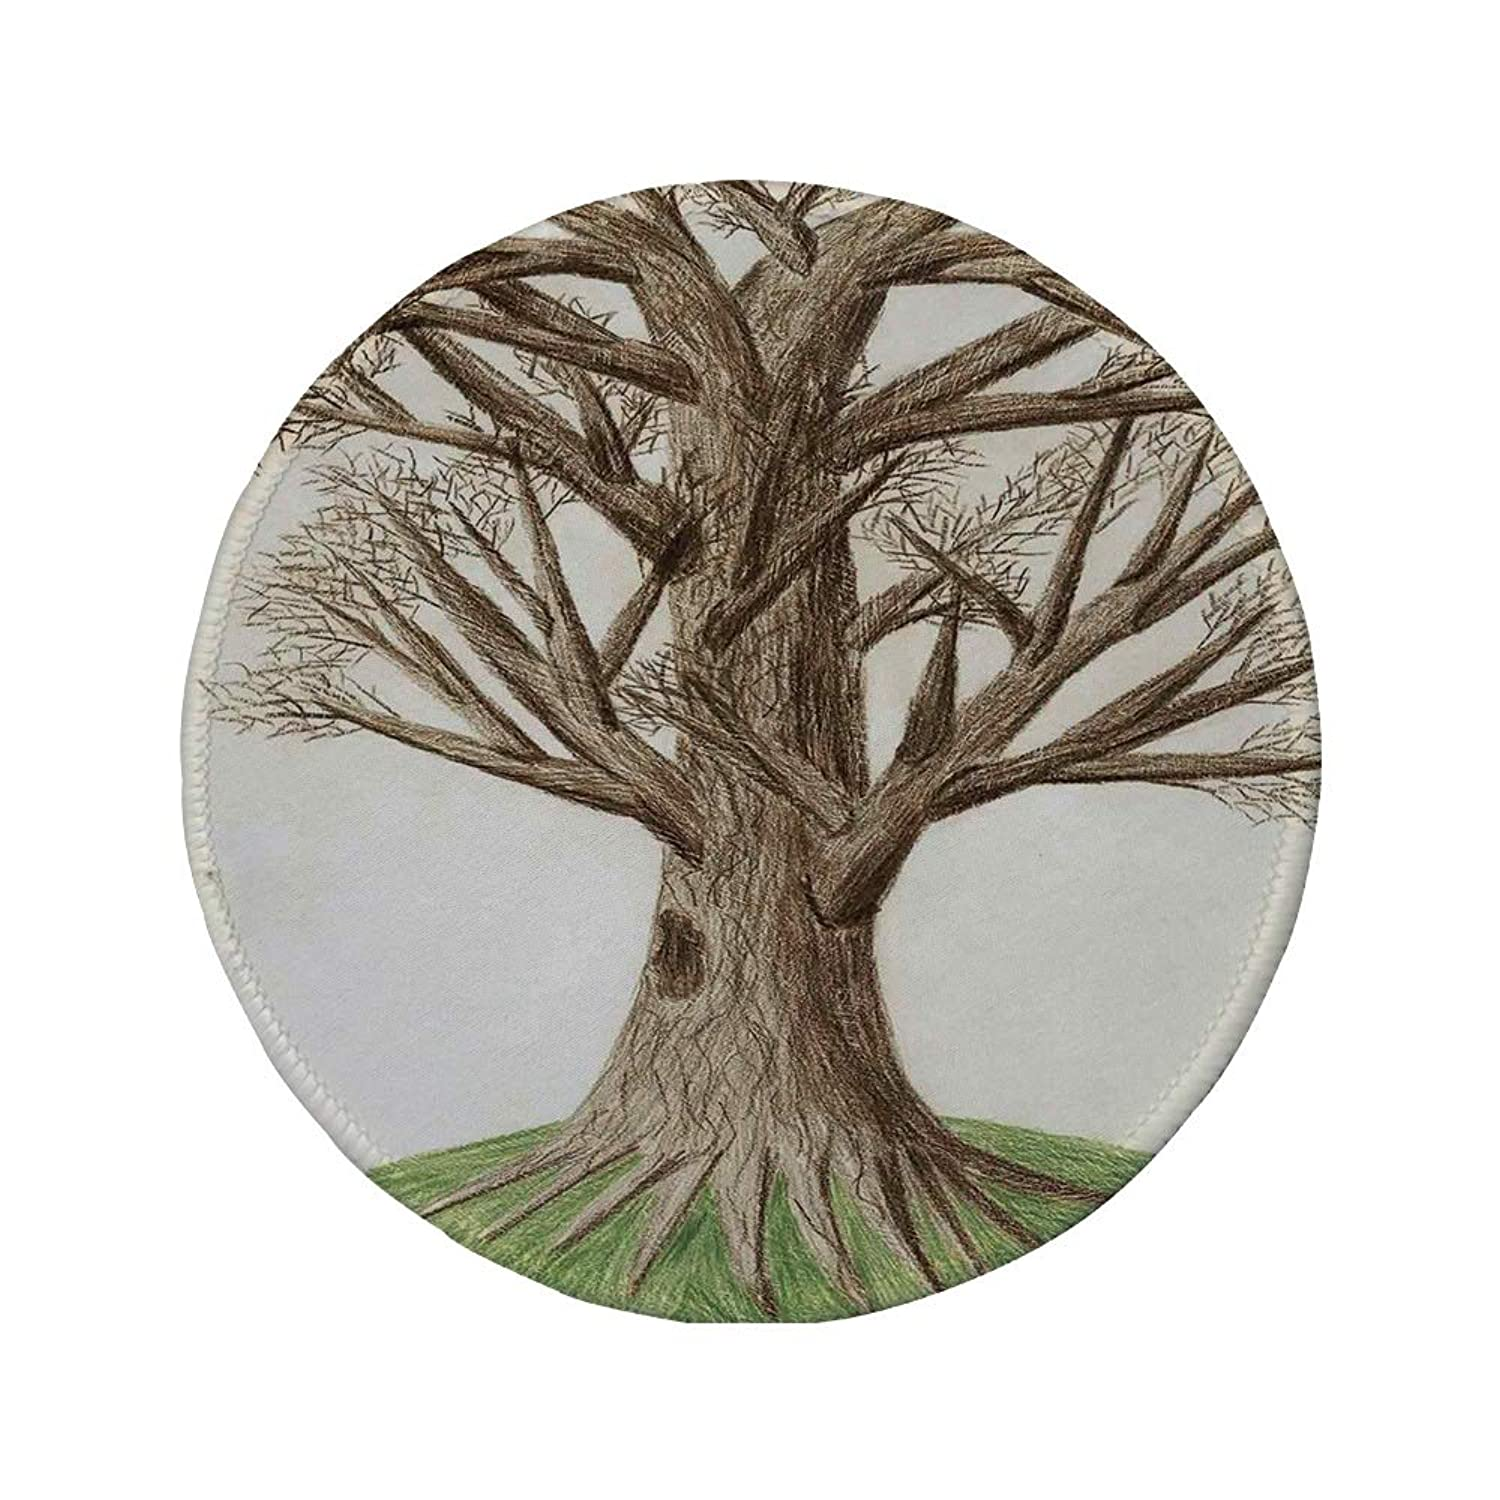 Non-Slip Rubber Round Mouse Pad,Tree of Life,Artsy Hand Drawn Pastoral Single OldTree with Growing Branches on The Grass Decor,Green Brown,7.87